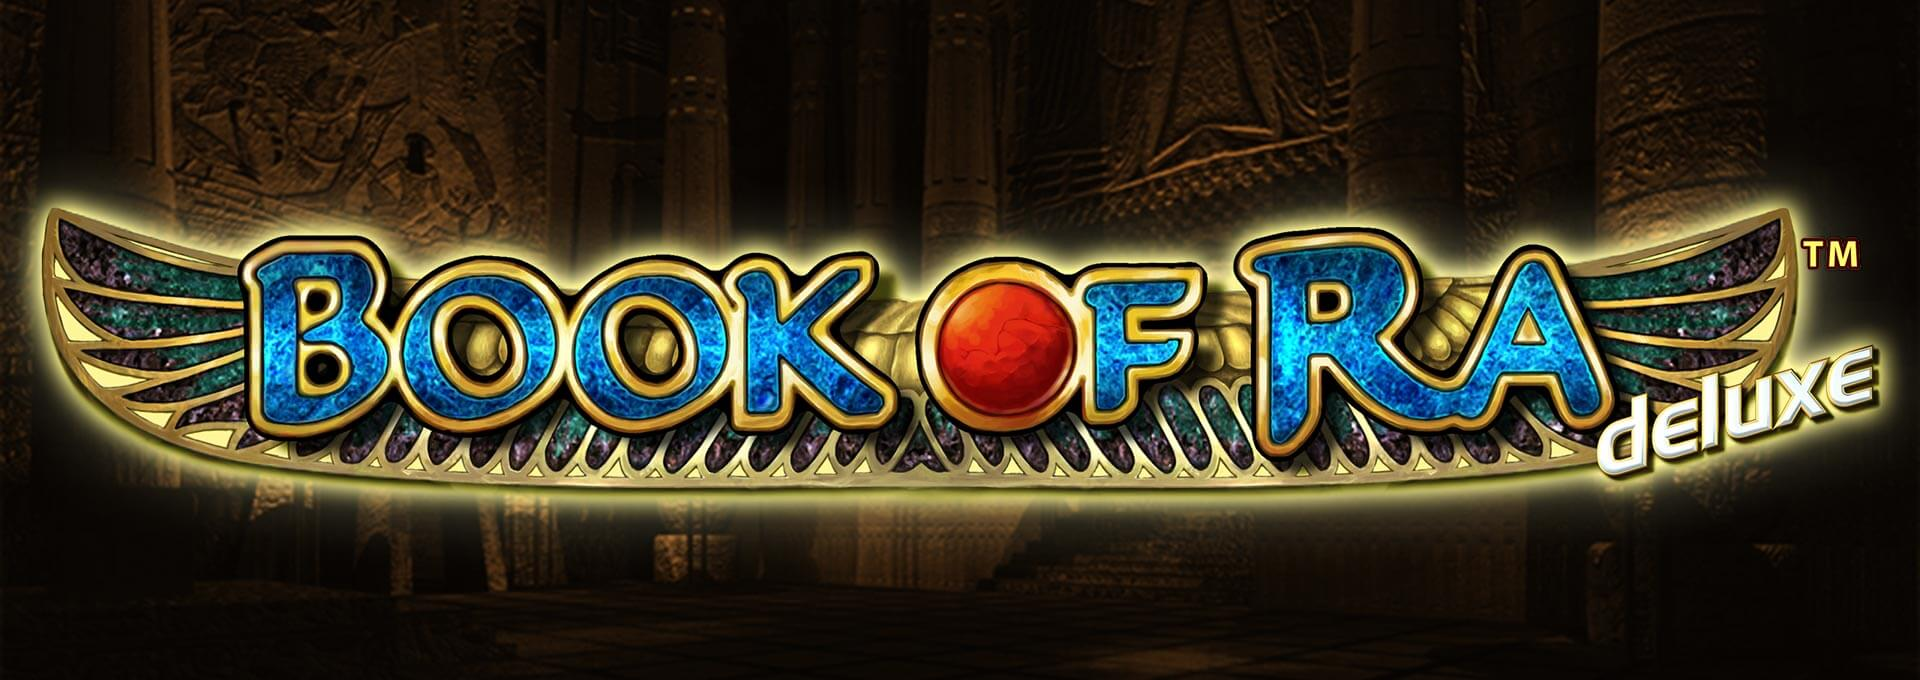 online casino blackjack www.book of ra